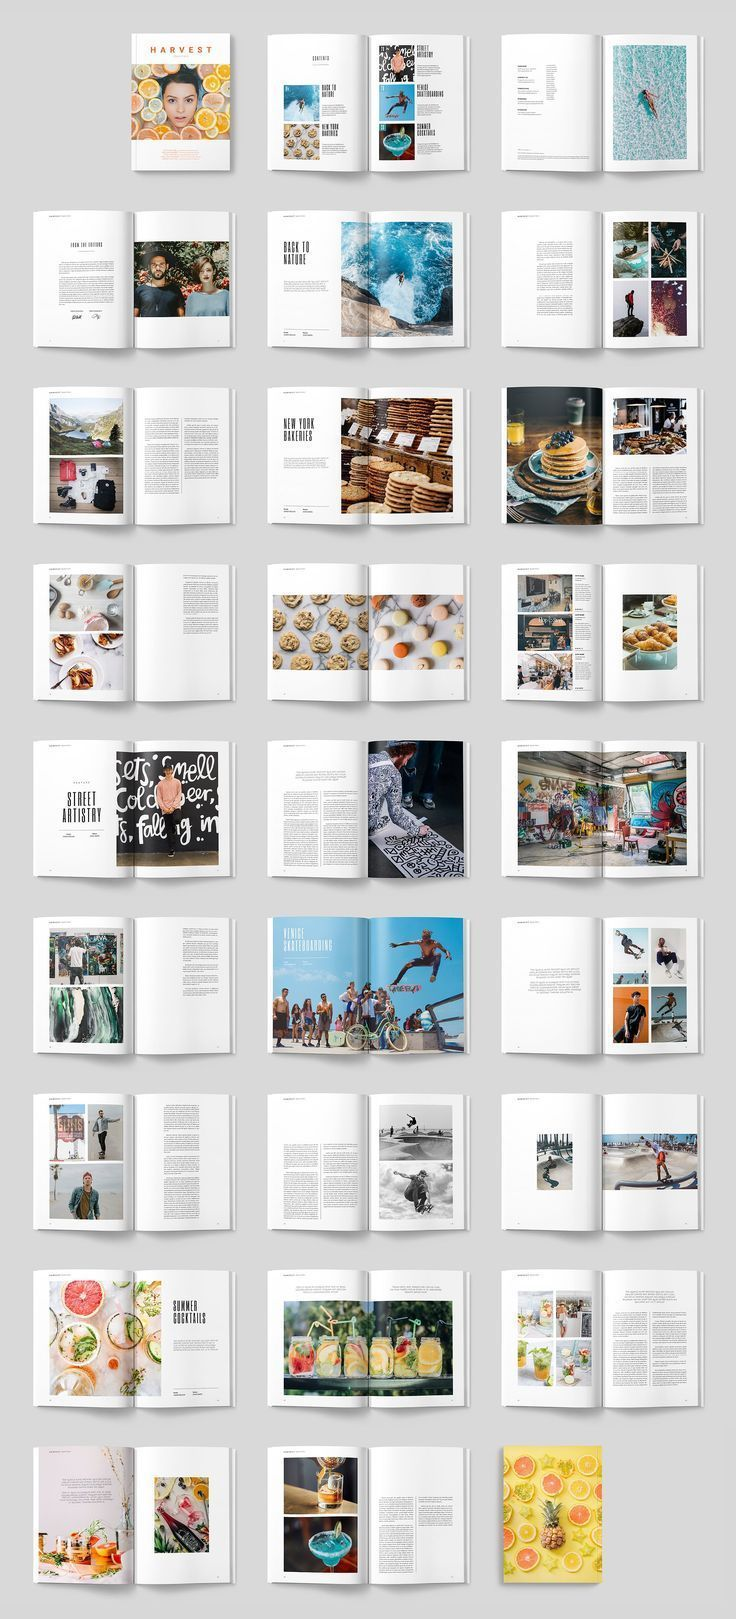 000 Magnificent Free Magazine Layout Template High Definition  Templates For Word Microsoft PowerpointFull